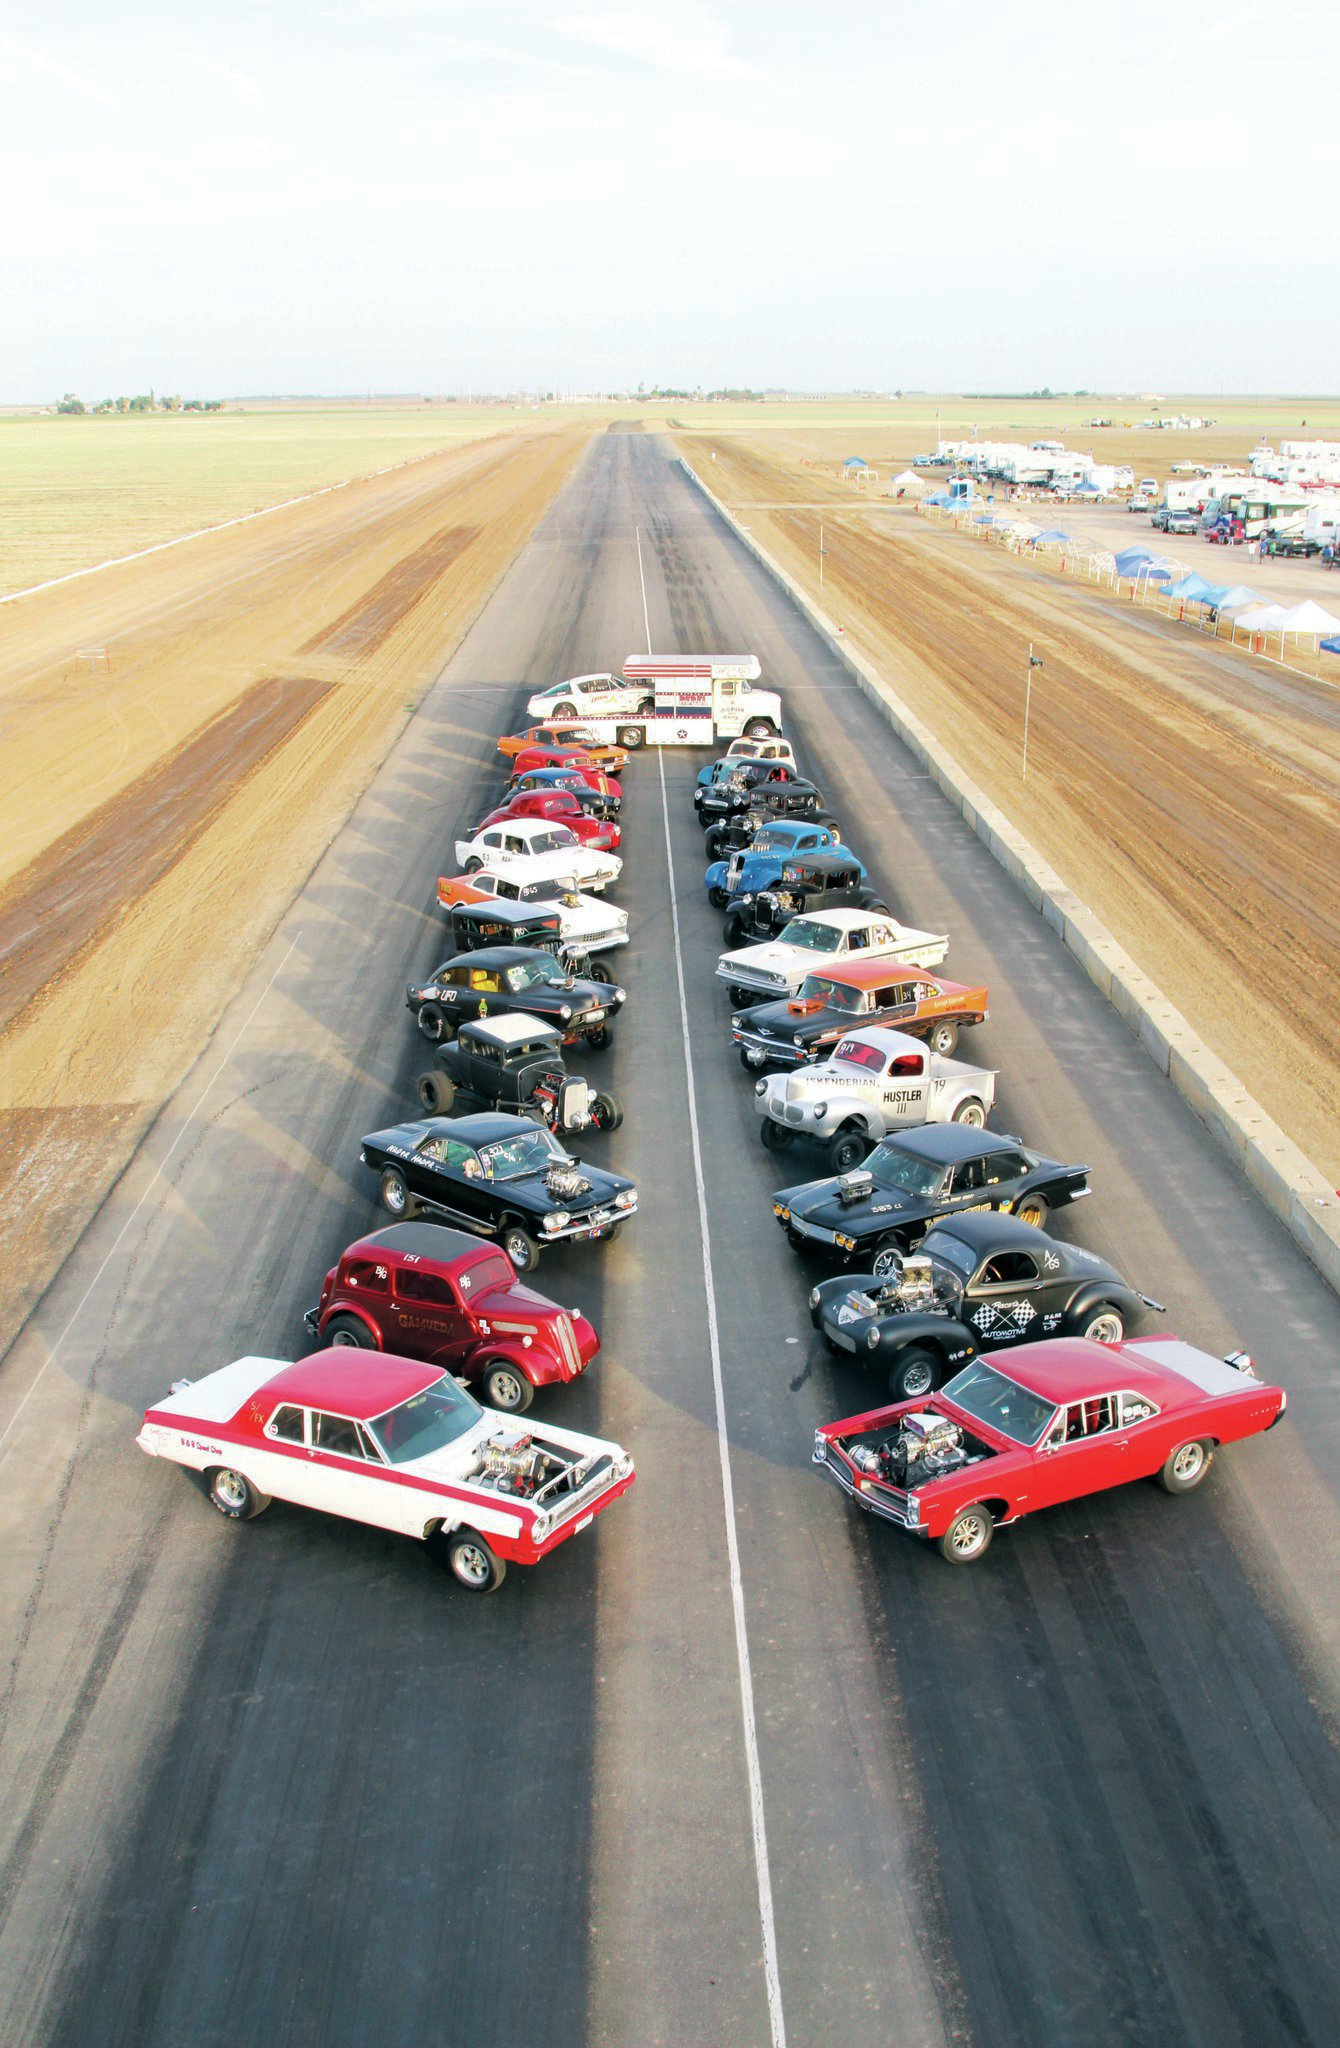 The 24-plus-car field for Sunday's gasser war came together for a group photo Saturday evening. The group consisted of original gassers from the '60s and new builds, all competing against each other for trophies and bragging rights.